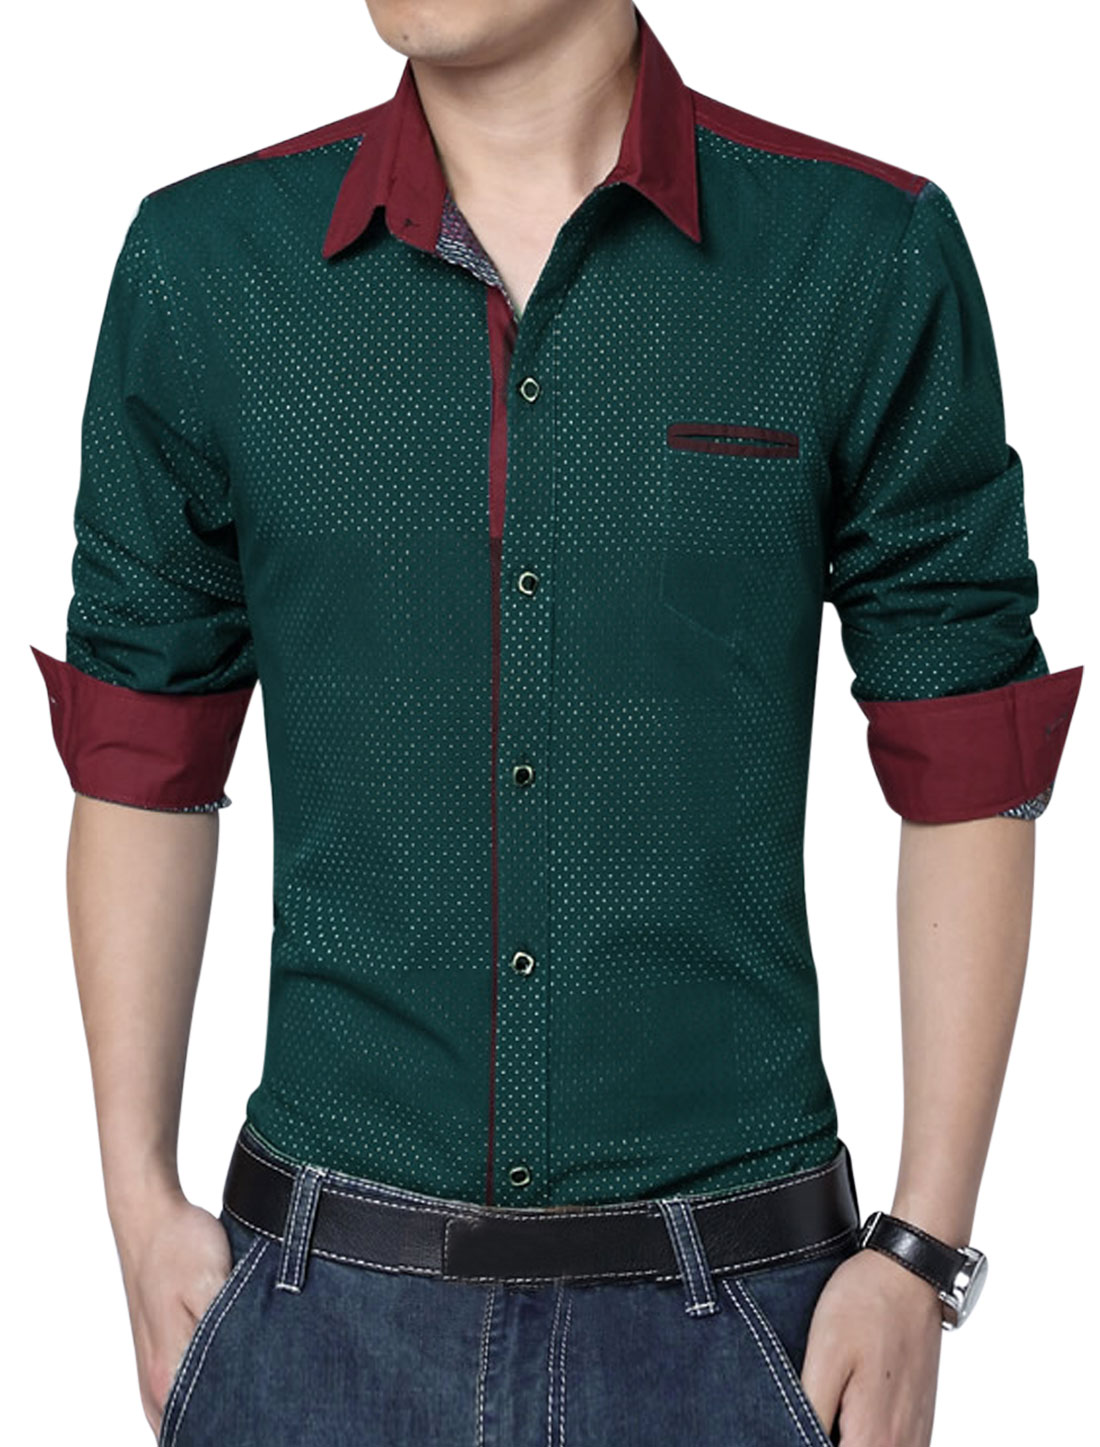 Men Long Sleeve Single Breasted Embroidery Design Leisure Shirt Dusty Green L